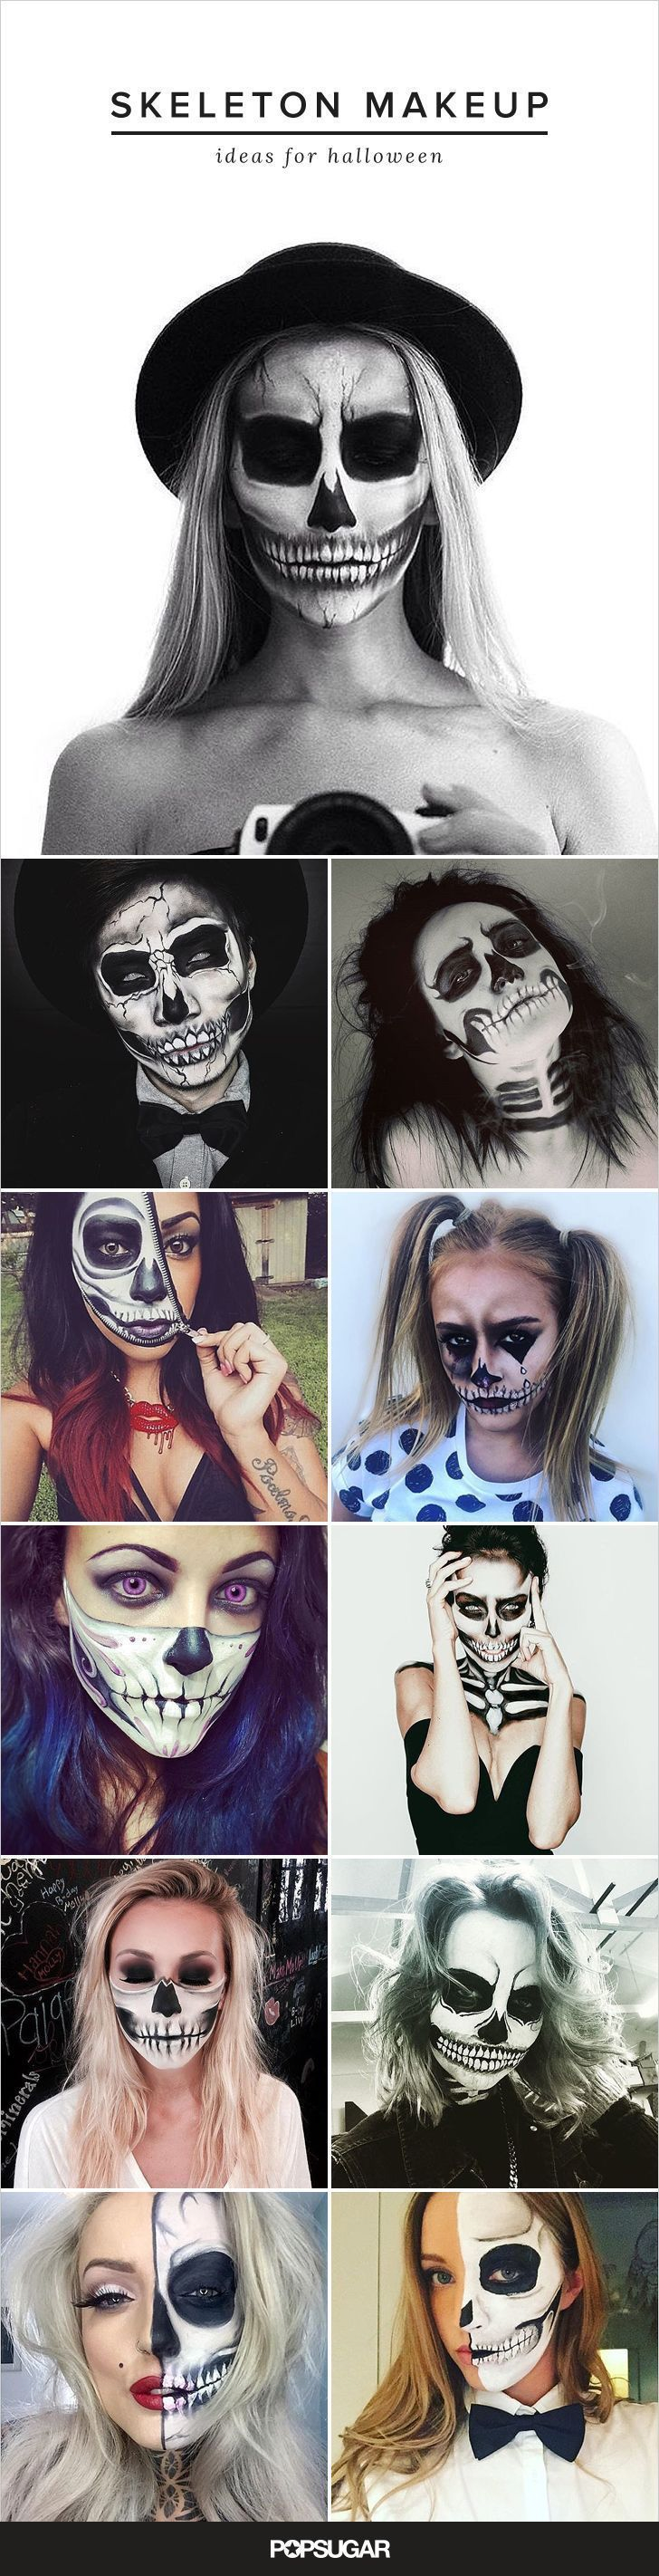 """One of our favorite Halloween looks pulls from an iconic """"scary"""" image: the skull. Using extreme contouring and shadowing, makeup can be used to create an incredibly lifelike skeleton costume. We've put together some of the most stunning skeleton faces we've seen on Instagram — each is totally gorgeous and totally terrifying."""